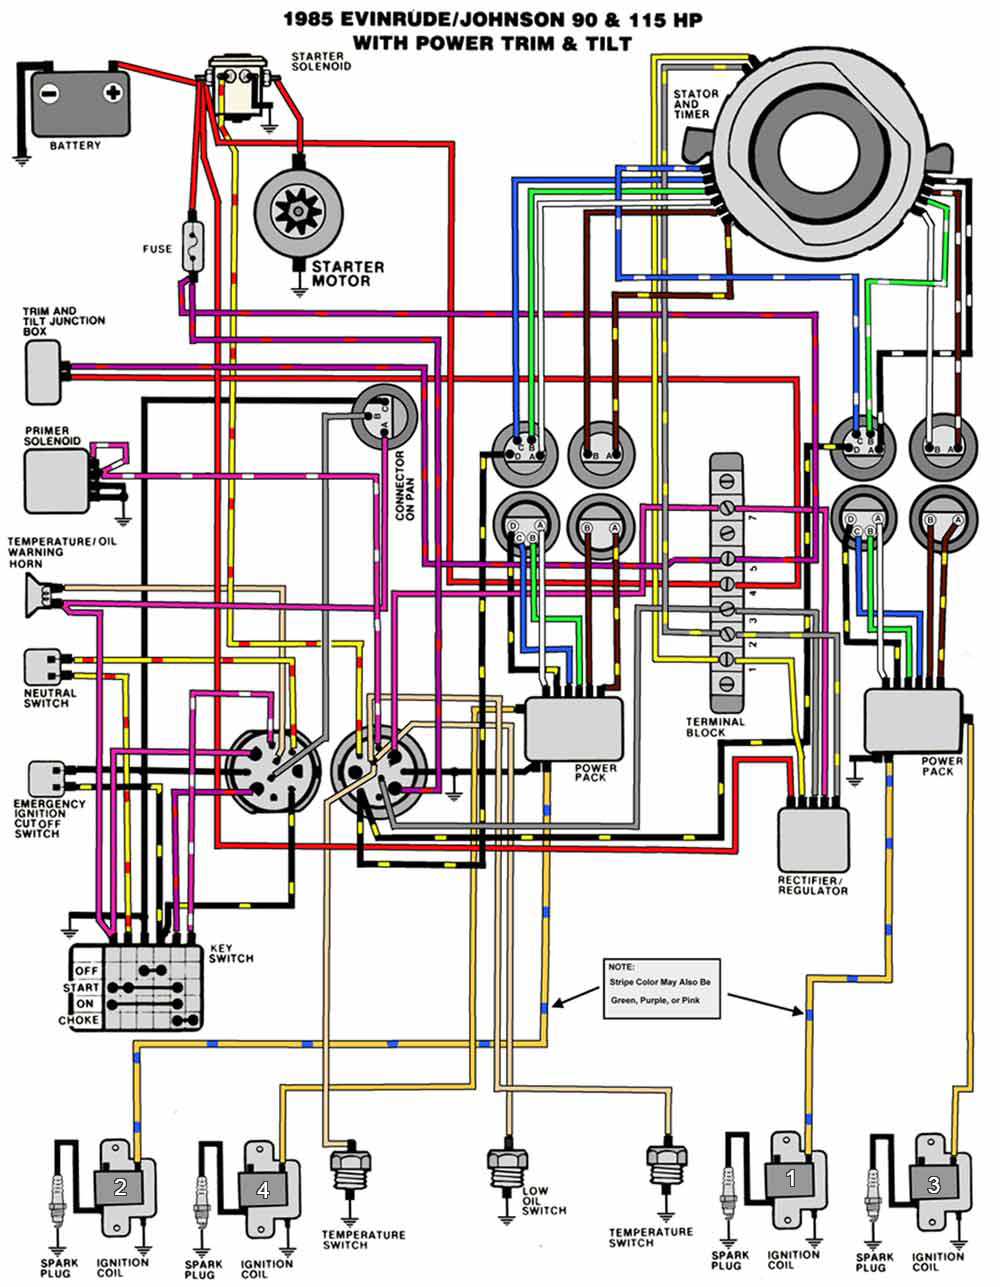 1985_90_115TnT mastertech marine evinrude johnson outboard wiring diagrams Yamaha 150 Outboard Wiring Diagram at gsmx.co